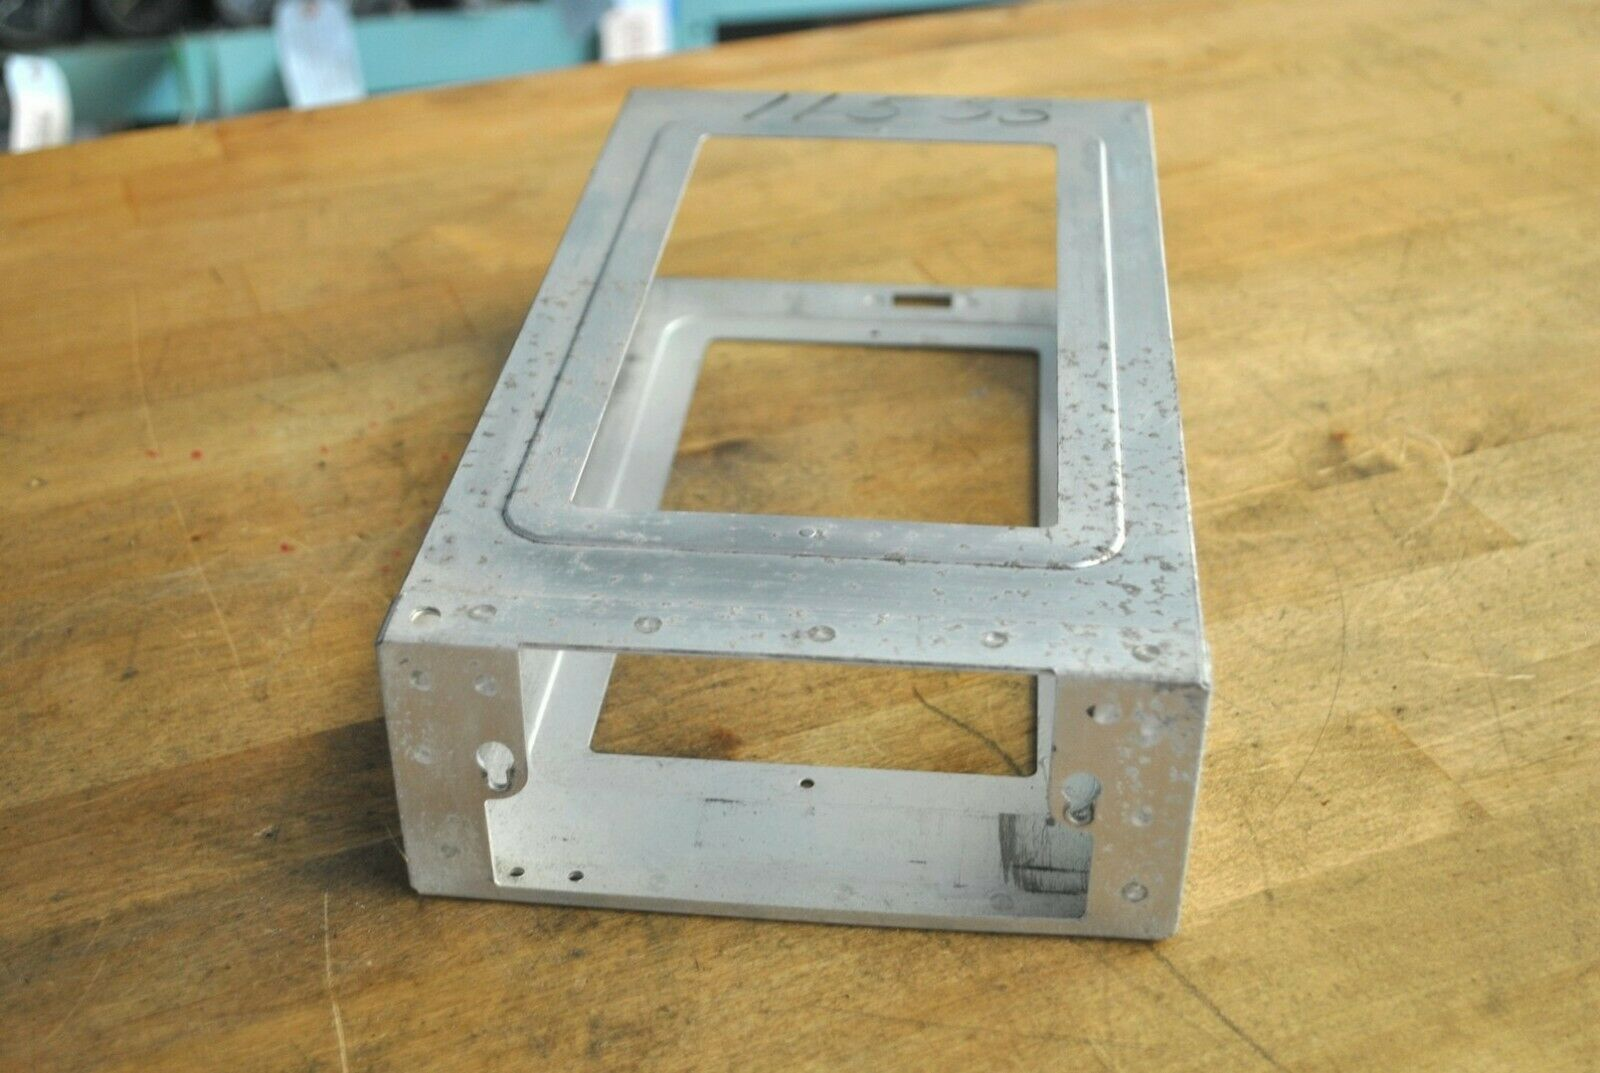 Bendix King KX-170B NAV COMM Mounting Rack / Installation Tray